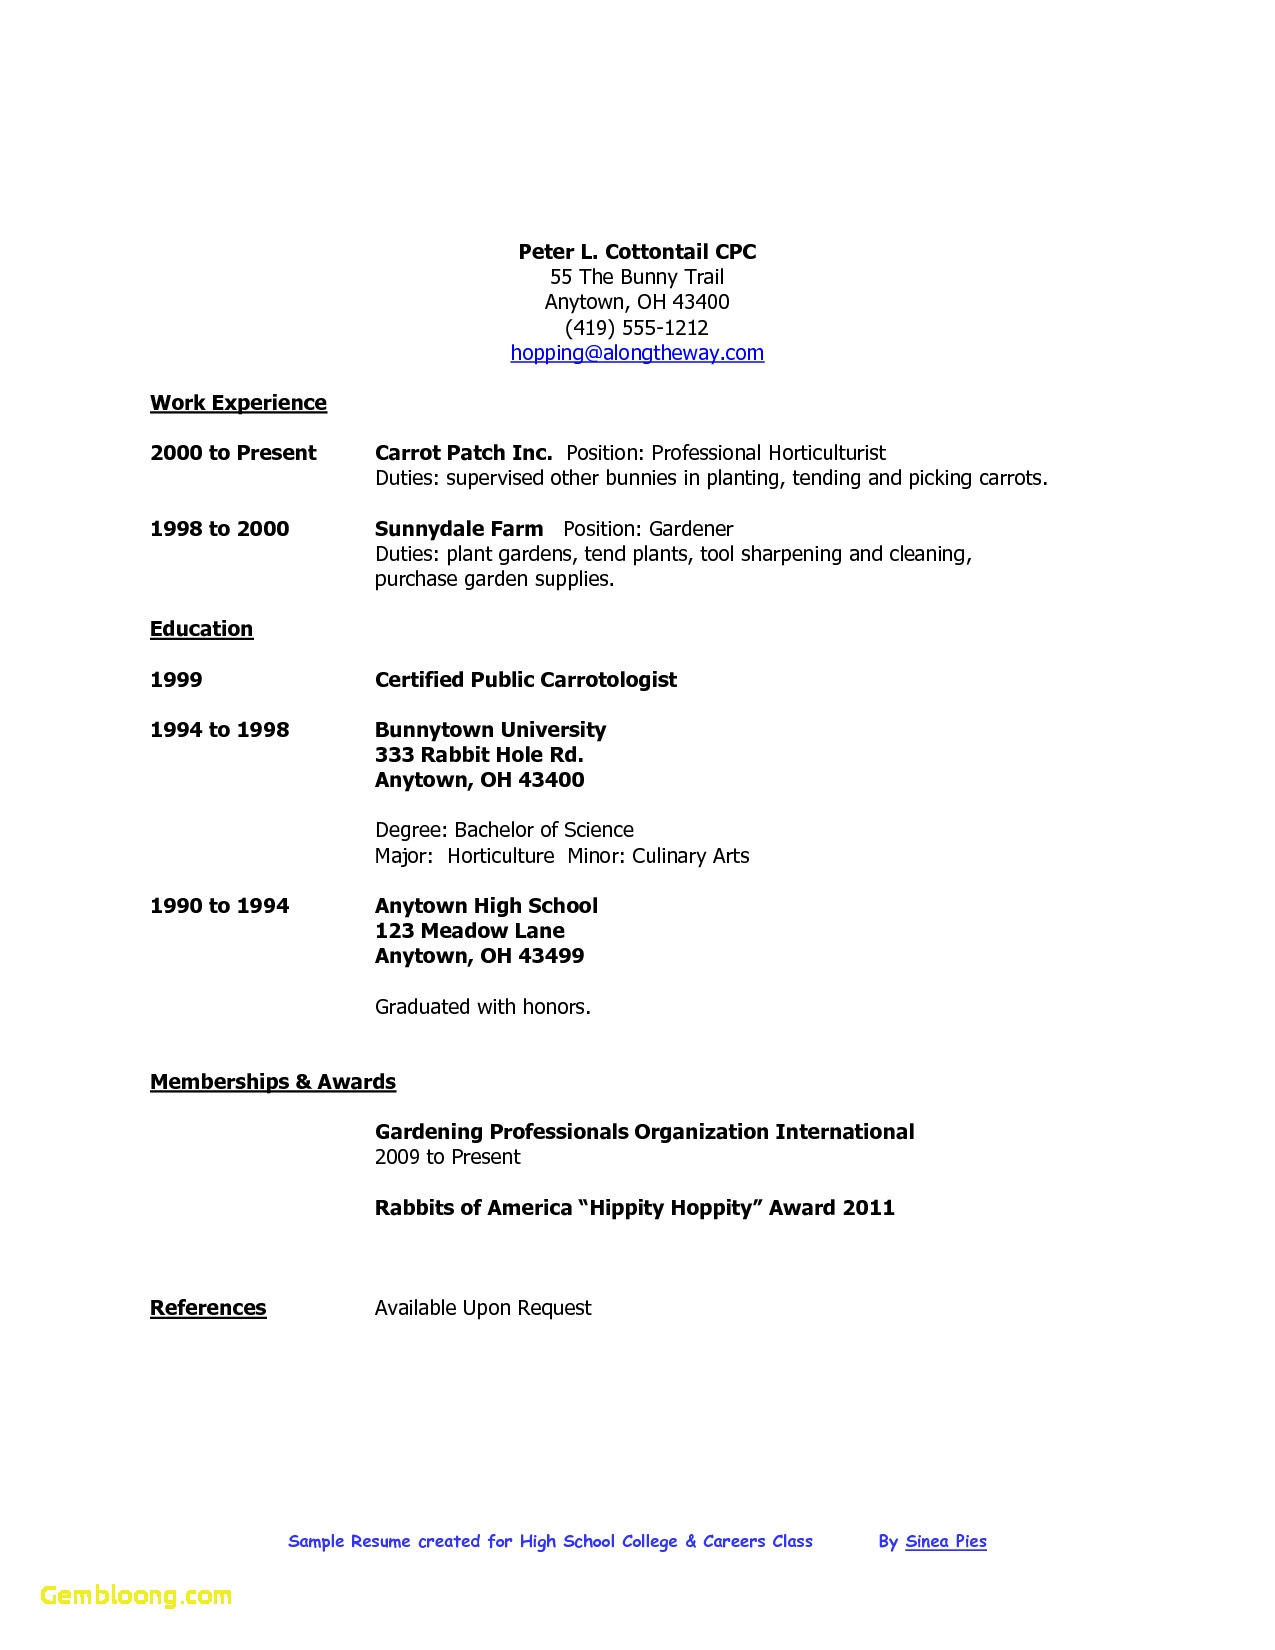 High School Graduate Resume Template Microsoft Word - High School Student Resume First Job